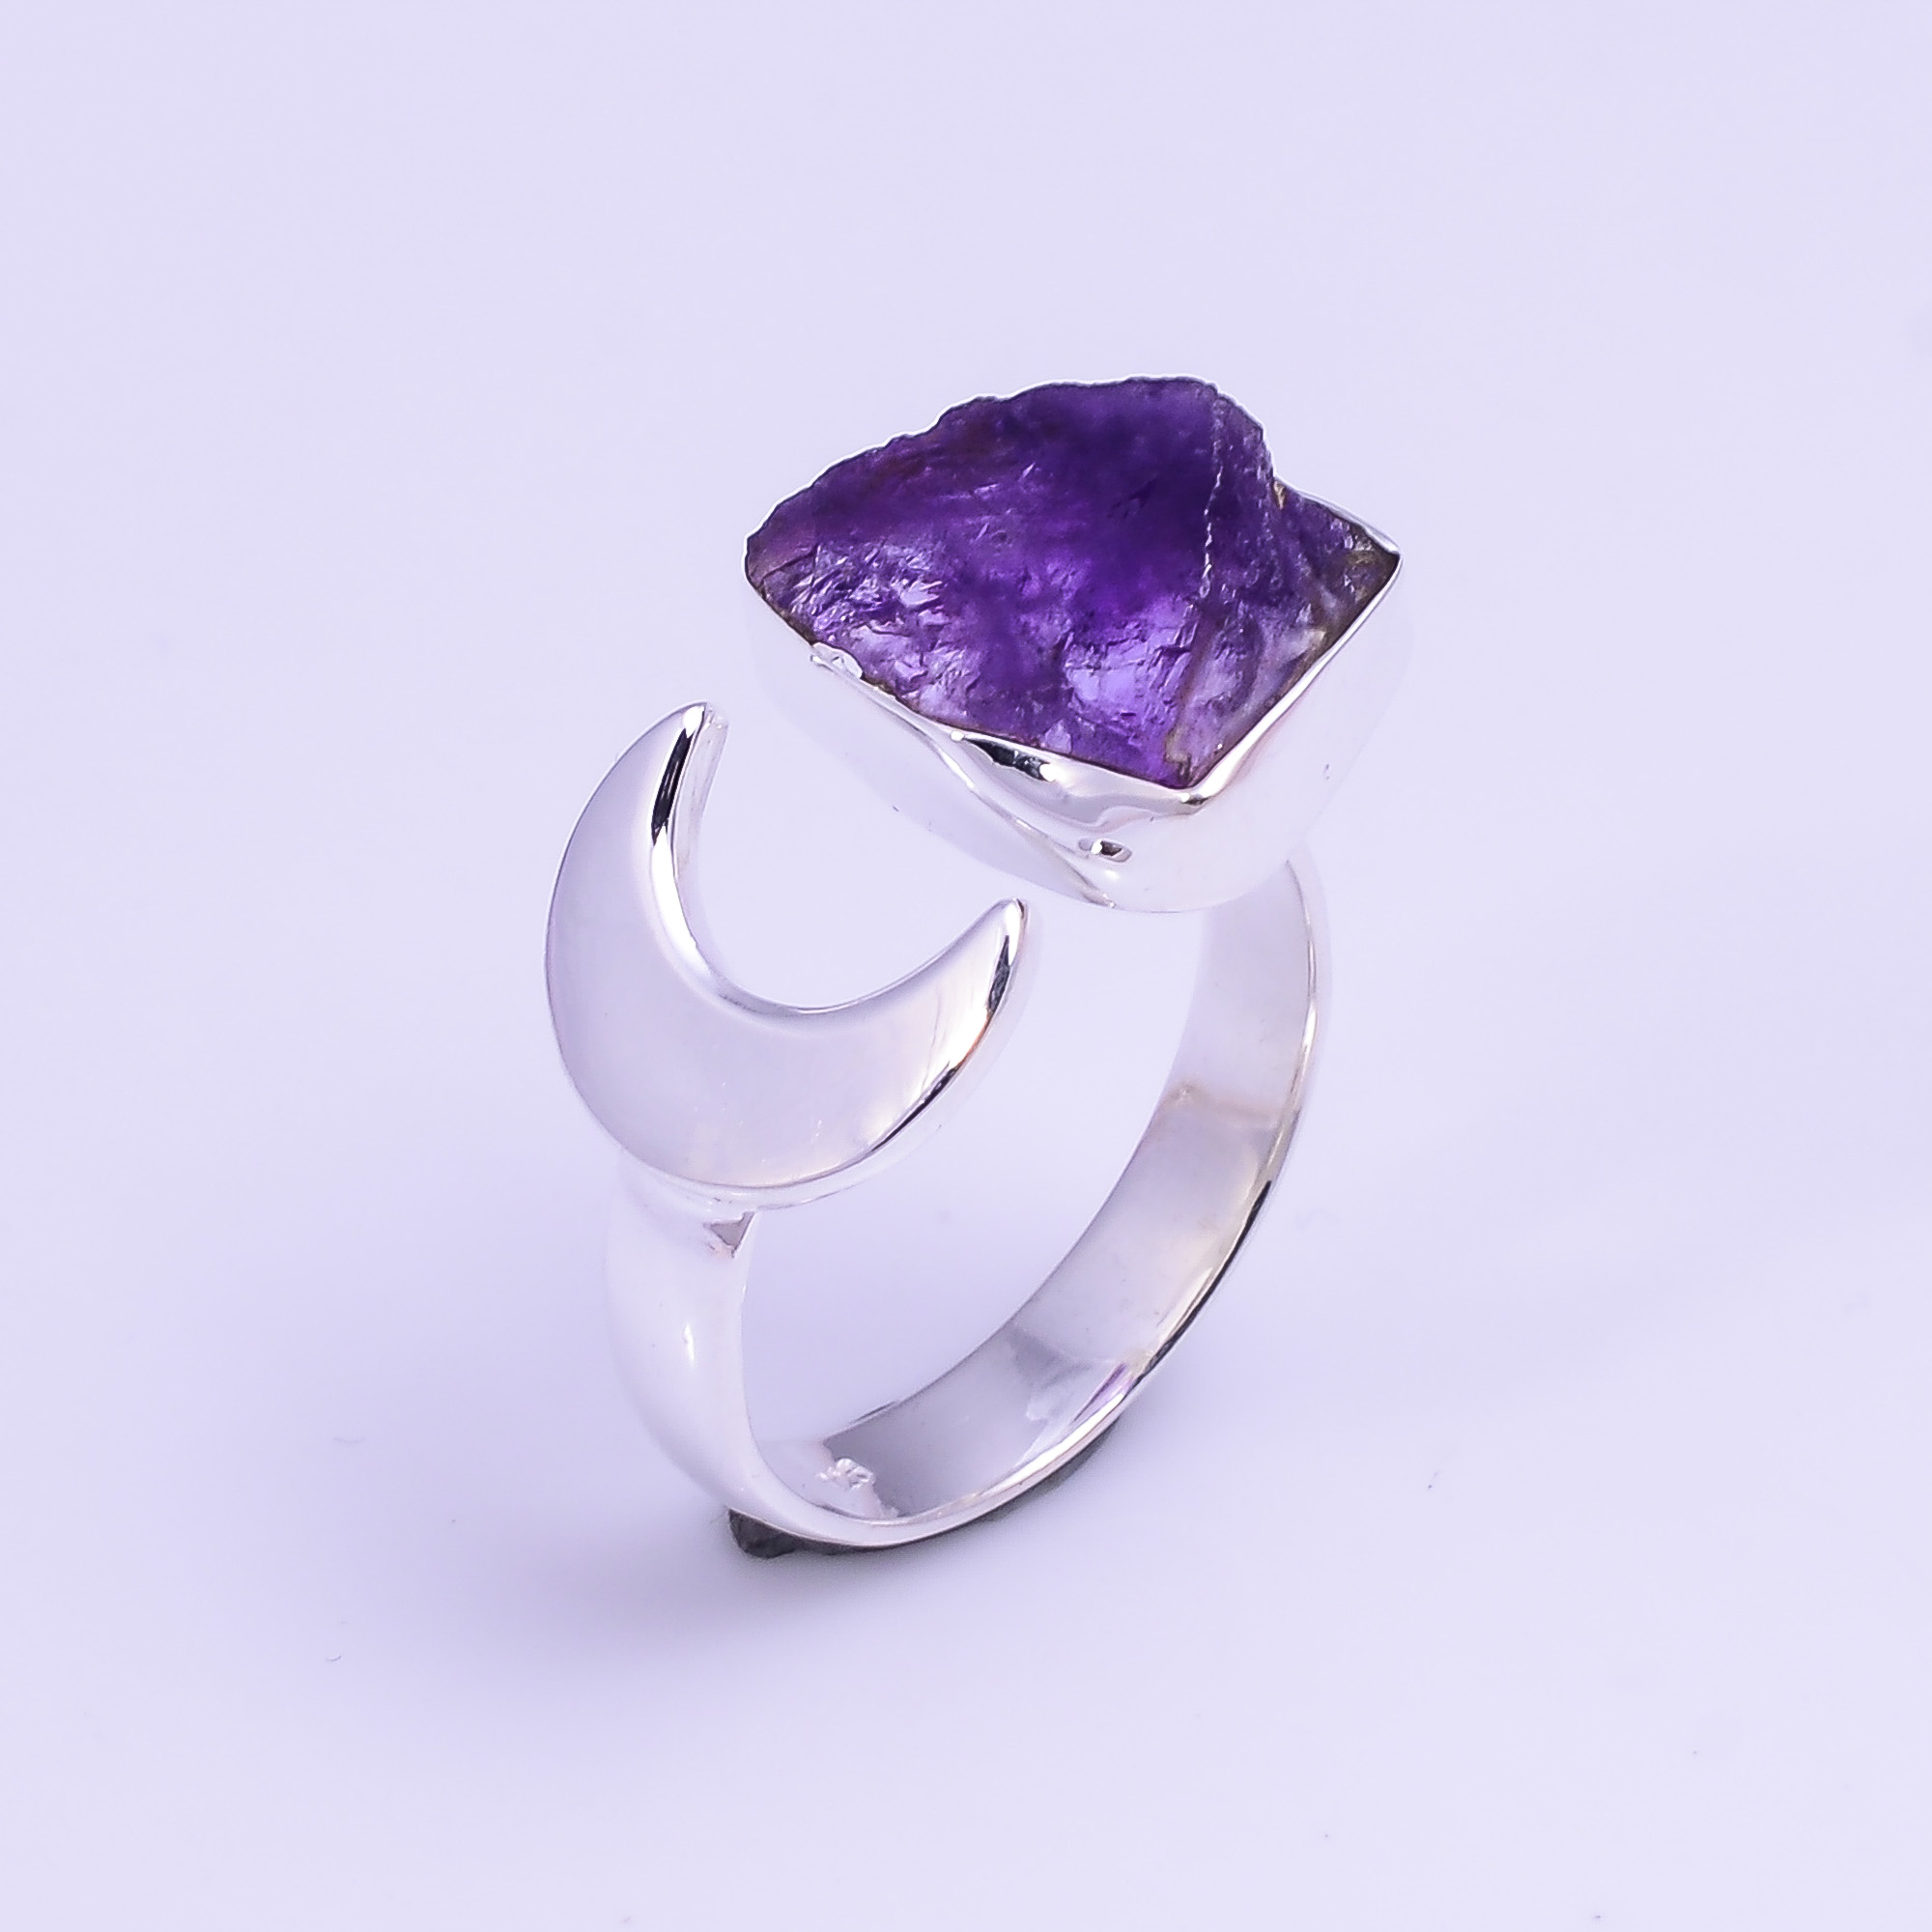 Natural Amethyst Raw Gemstone 925 Sterling Silver Ring Size US 6.25 Adjustable